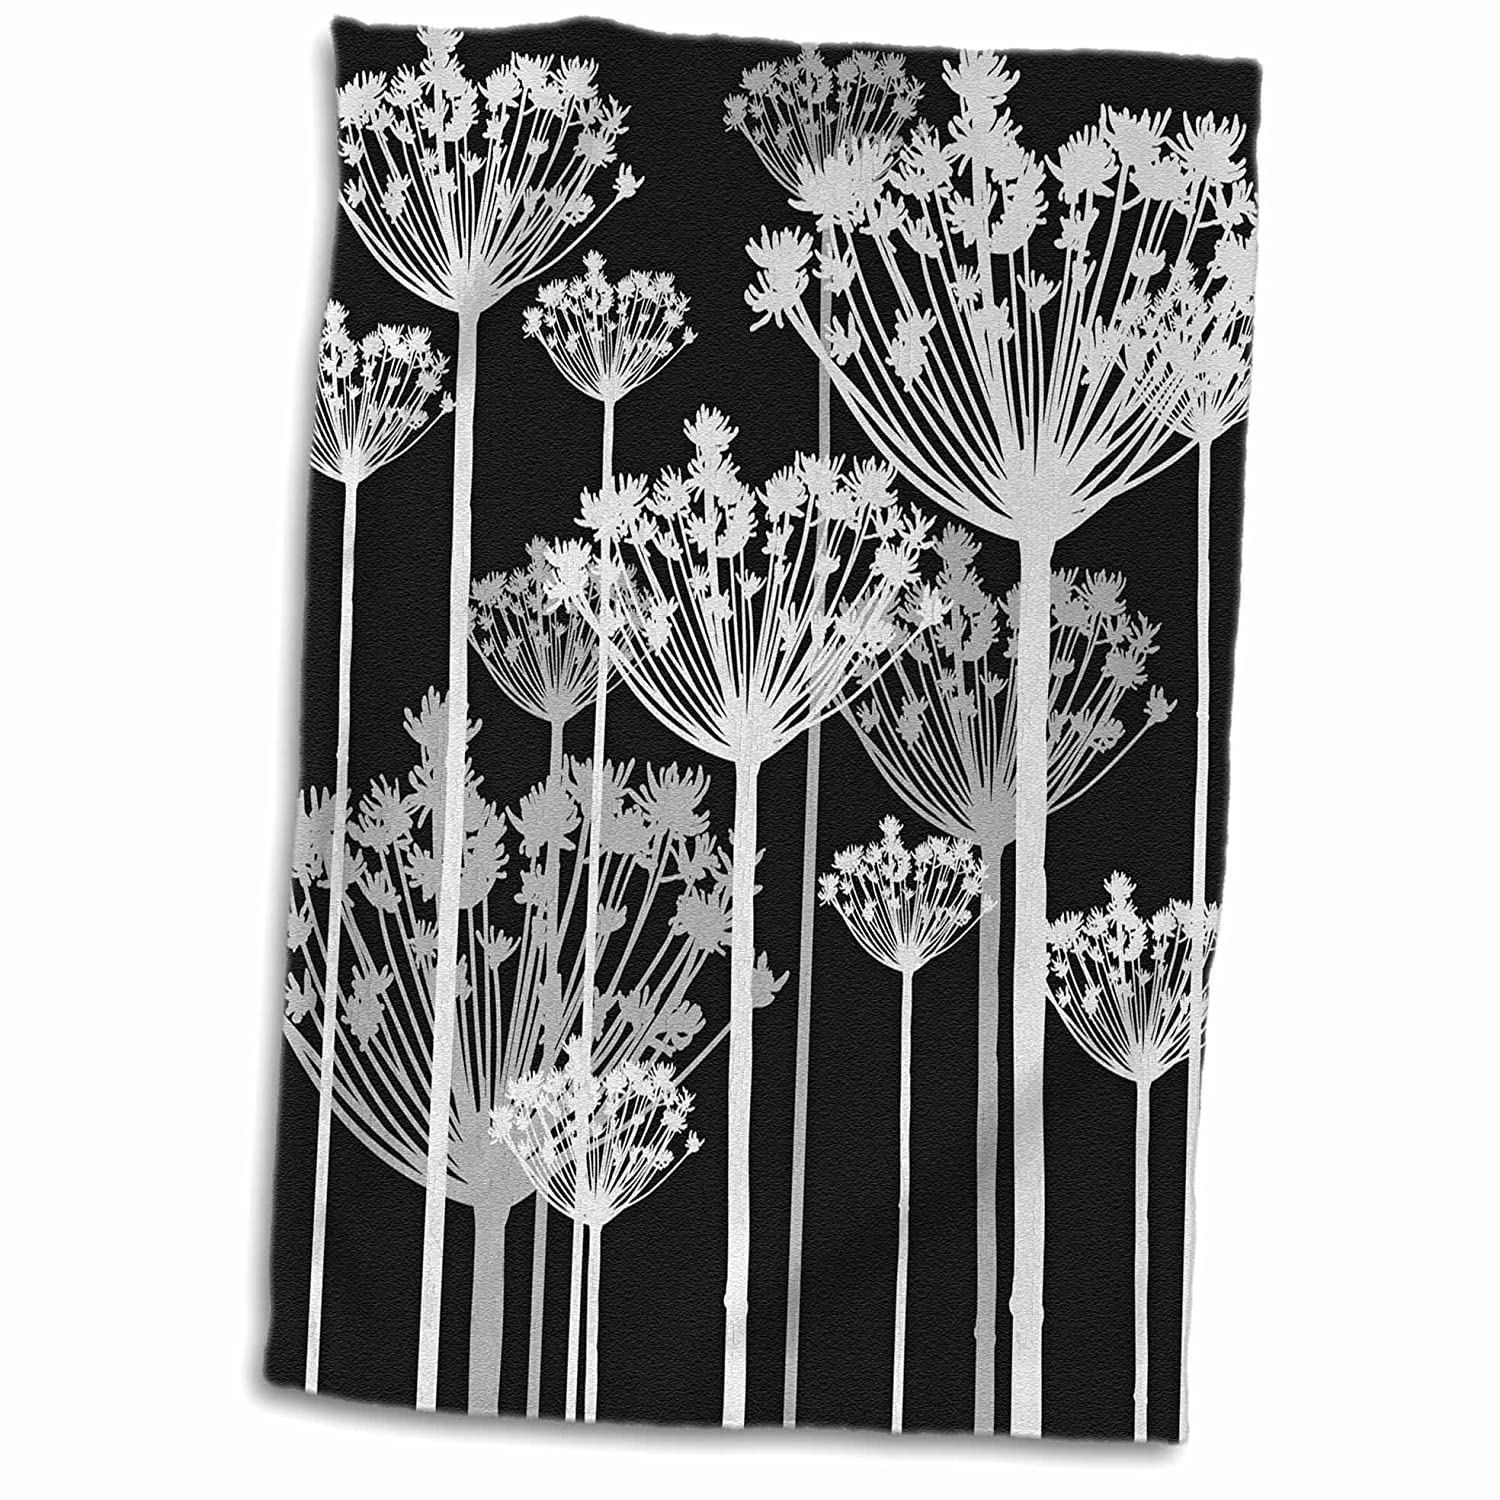 "3D Rose Contemporary Black-White-and Gray Dandelions Hand Towel, 15"" x 22"""